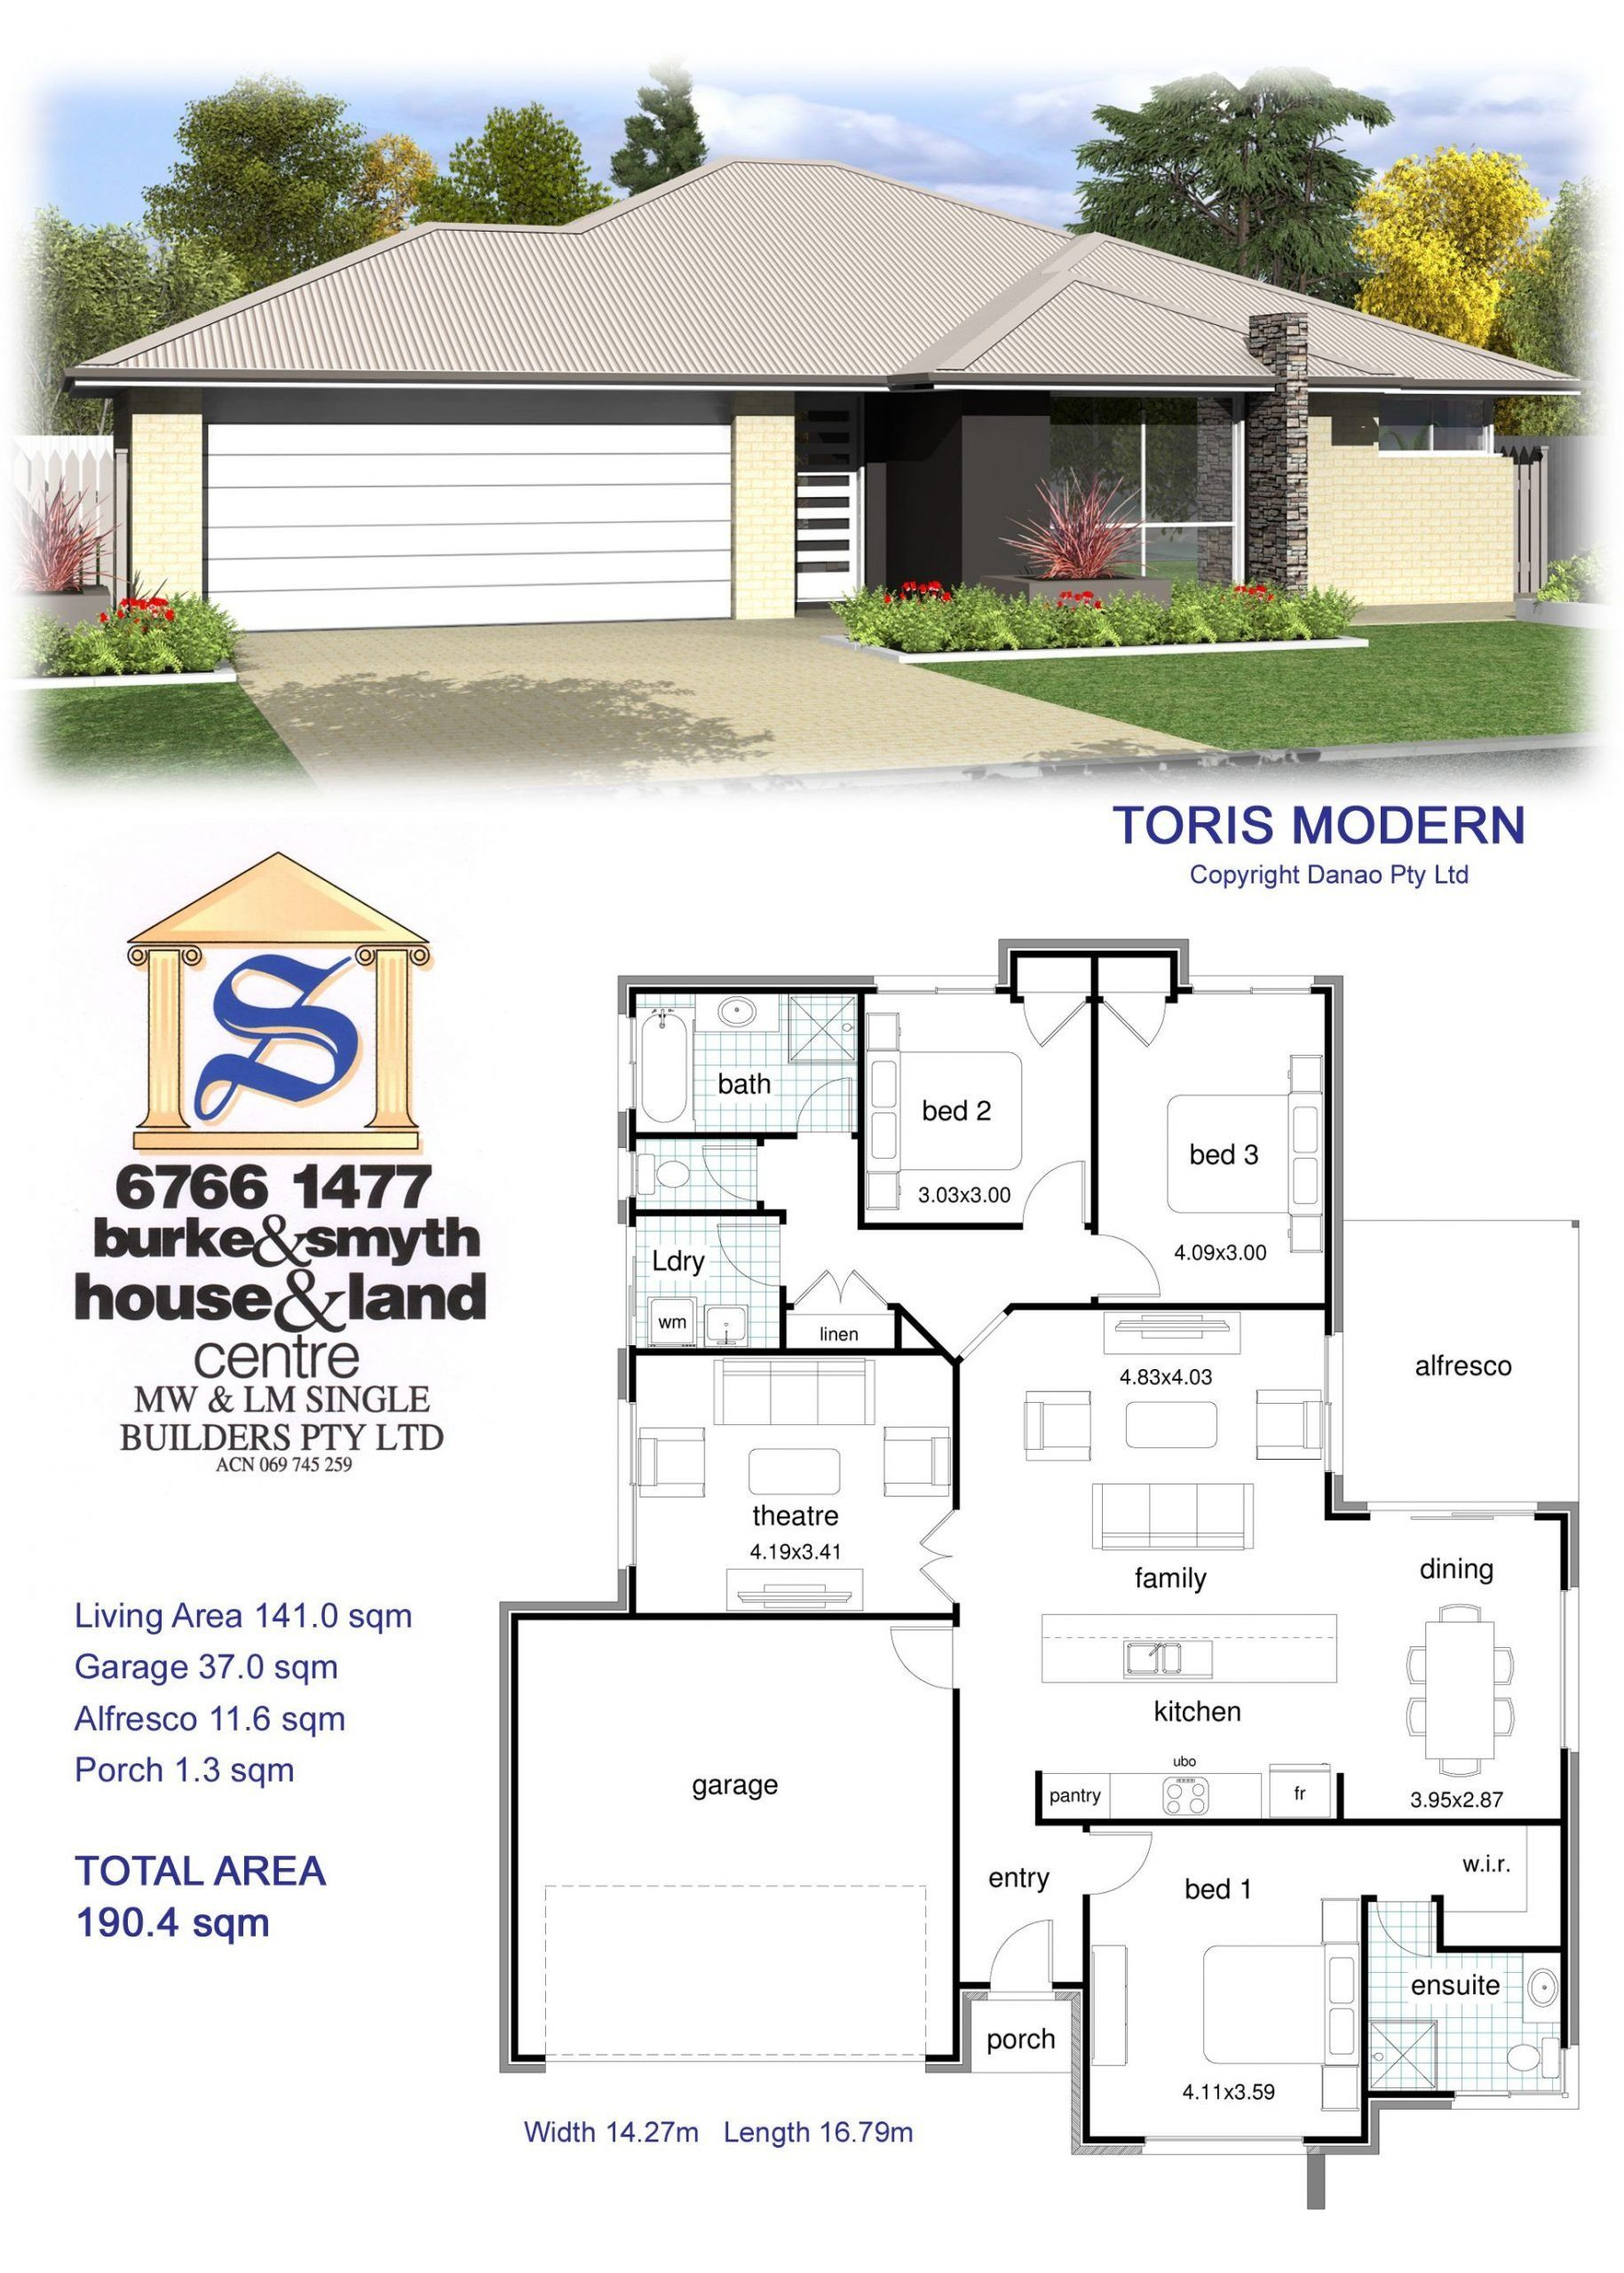 Affordable Modern House Plans To Build Single Builders I Toris Modern House Plan House Plan Gallery Free House Plans 4 Bedroom House Plans